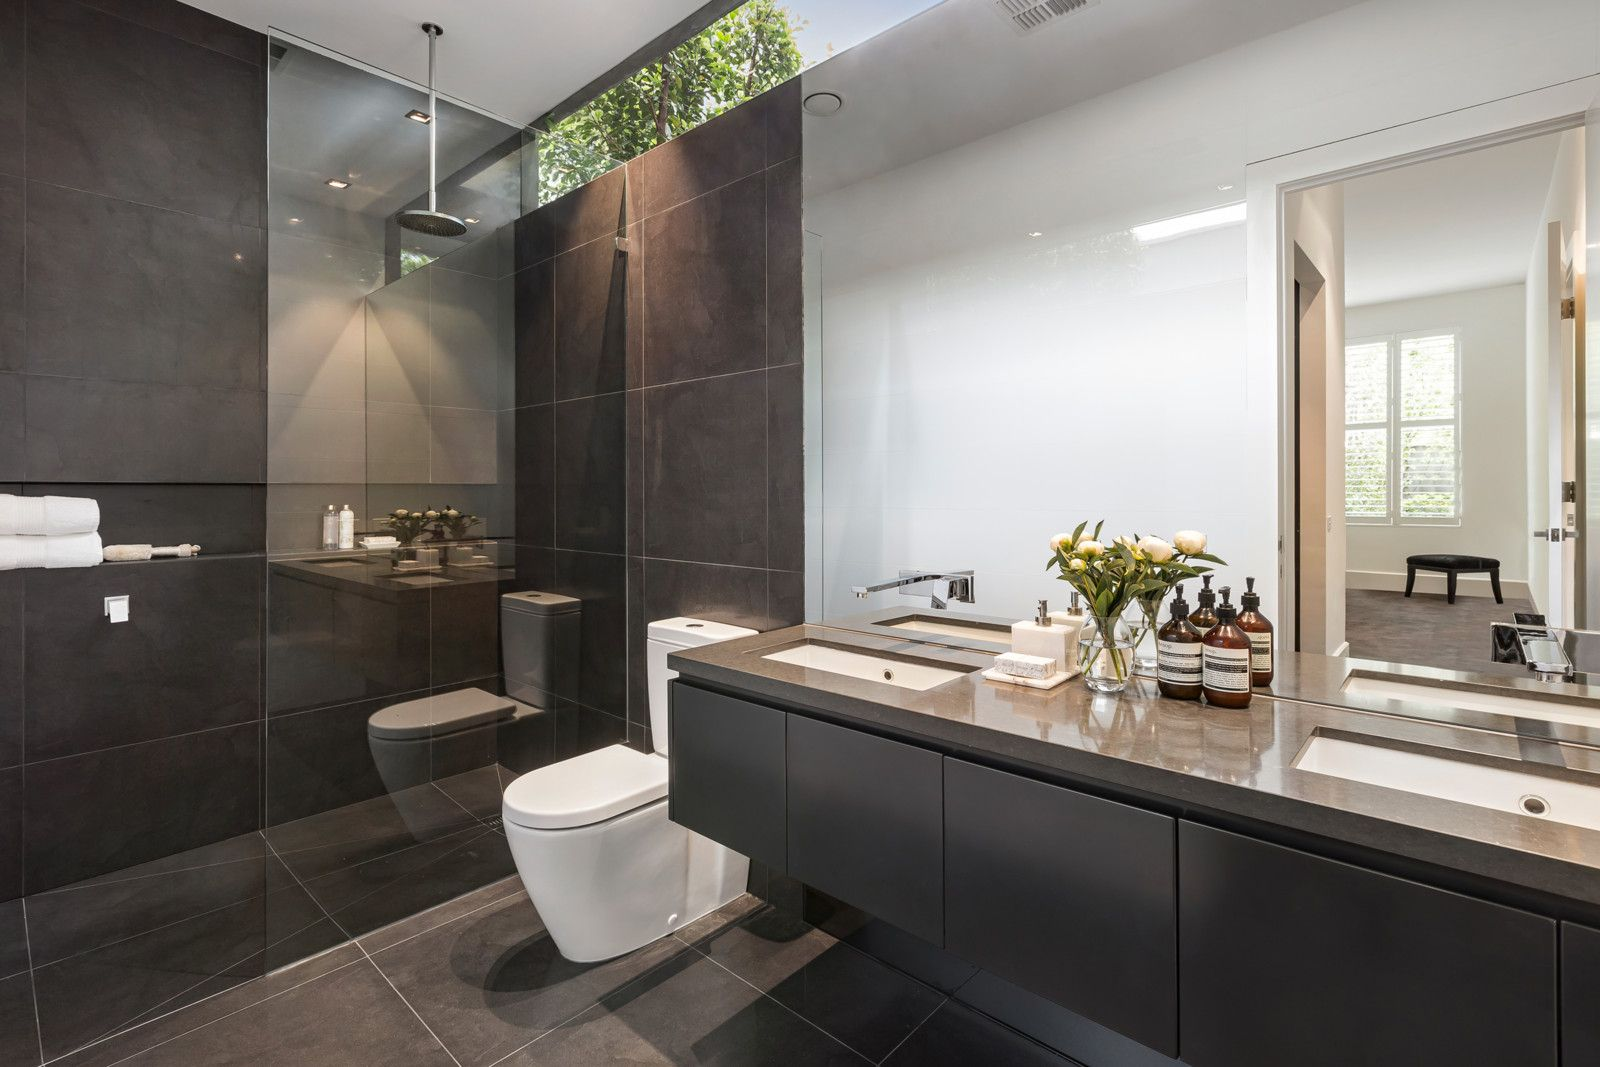 Bathroom Windows For Sale Melbourne sold property details: 15 railway avenue armadale 3143 vic